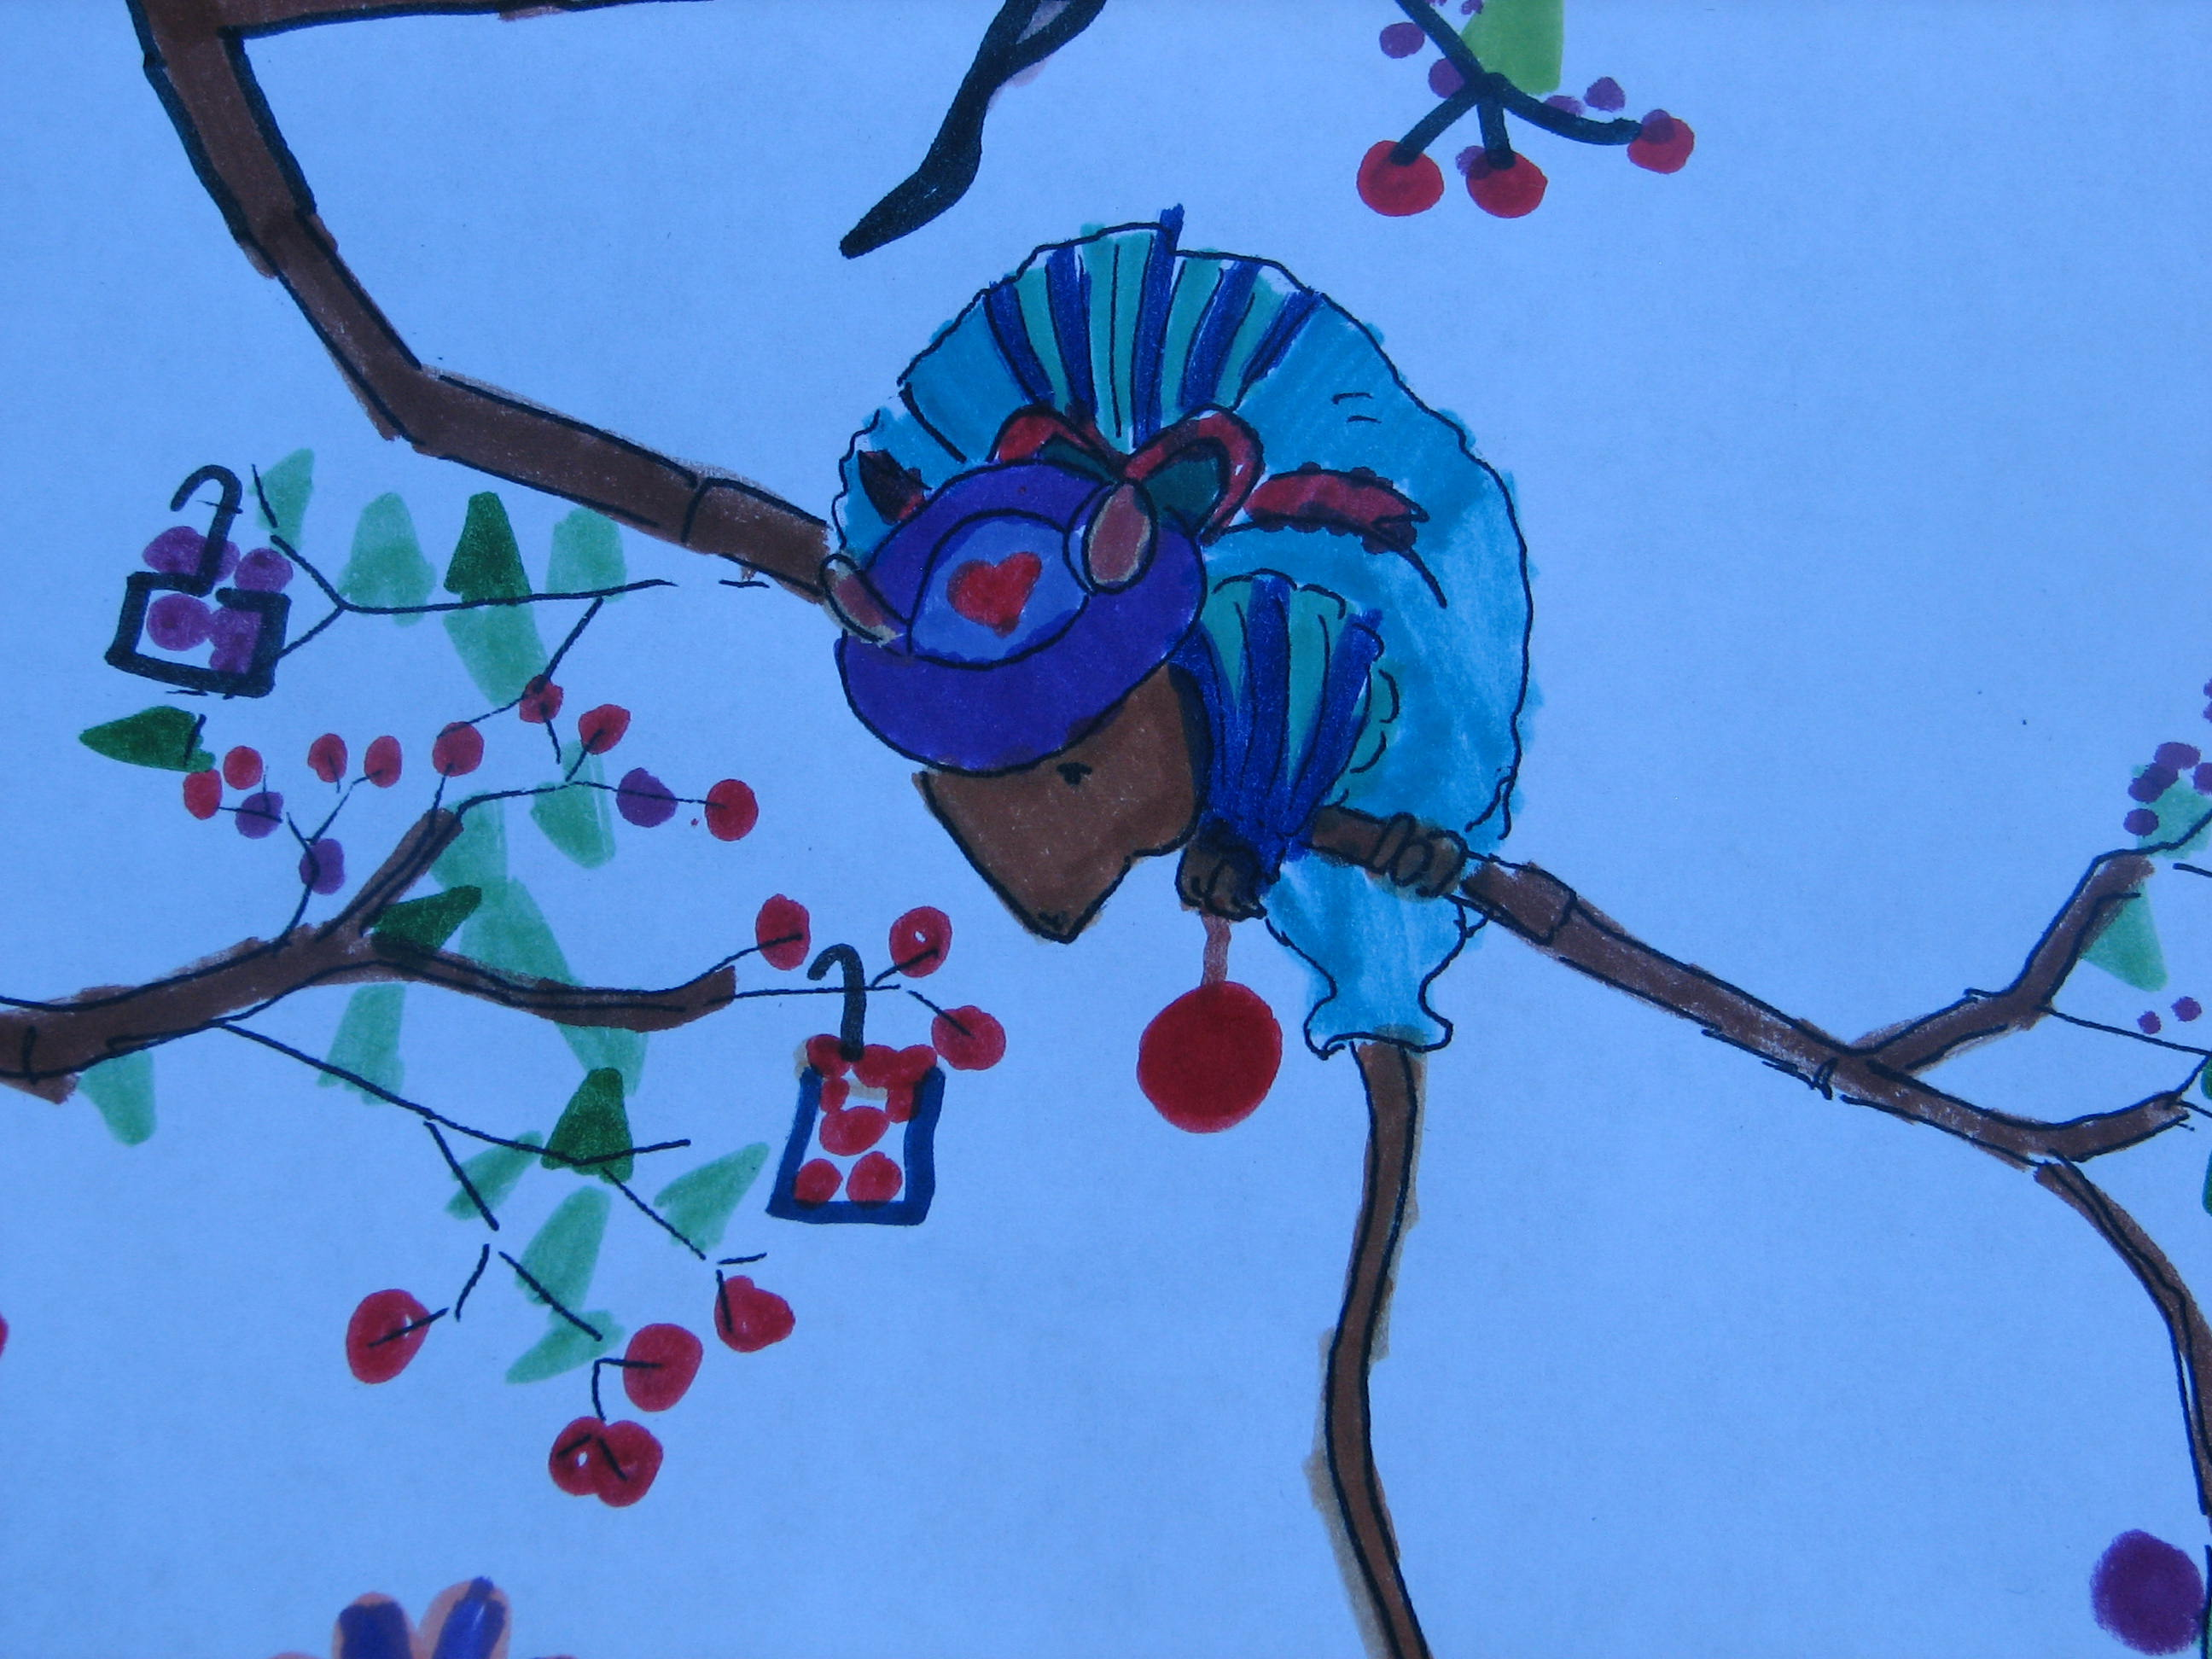 of mice and berries s-2